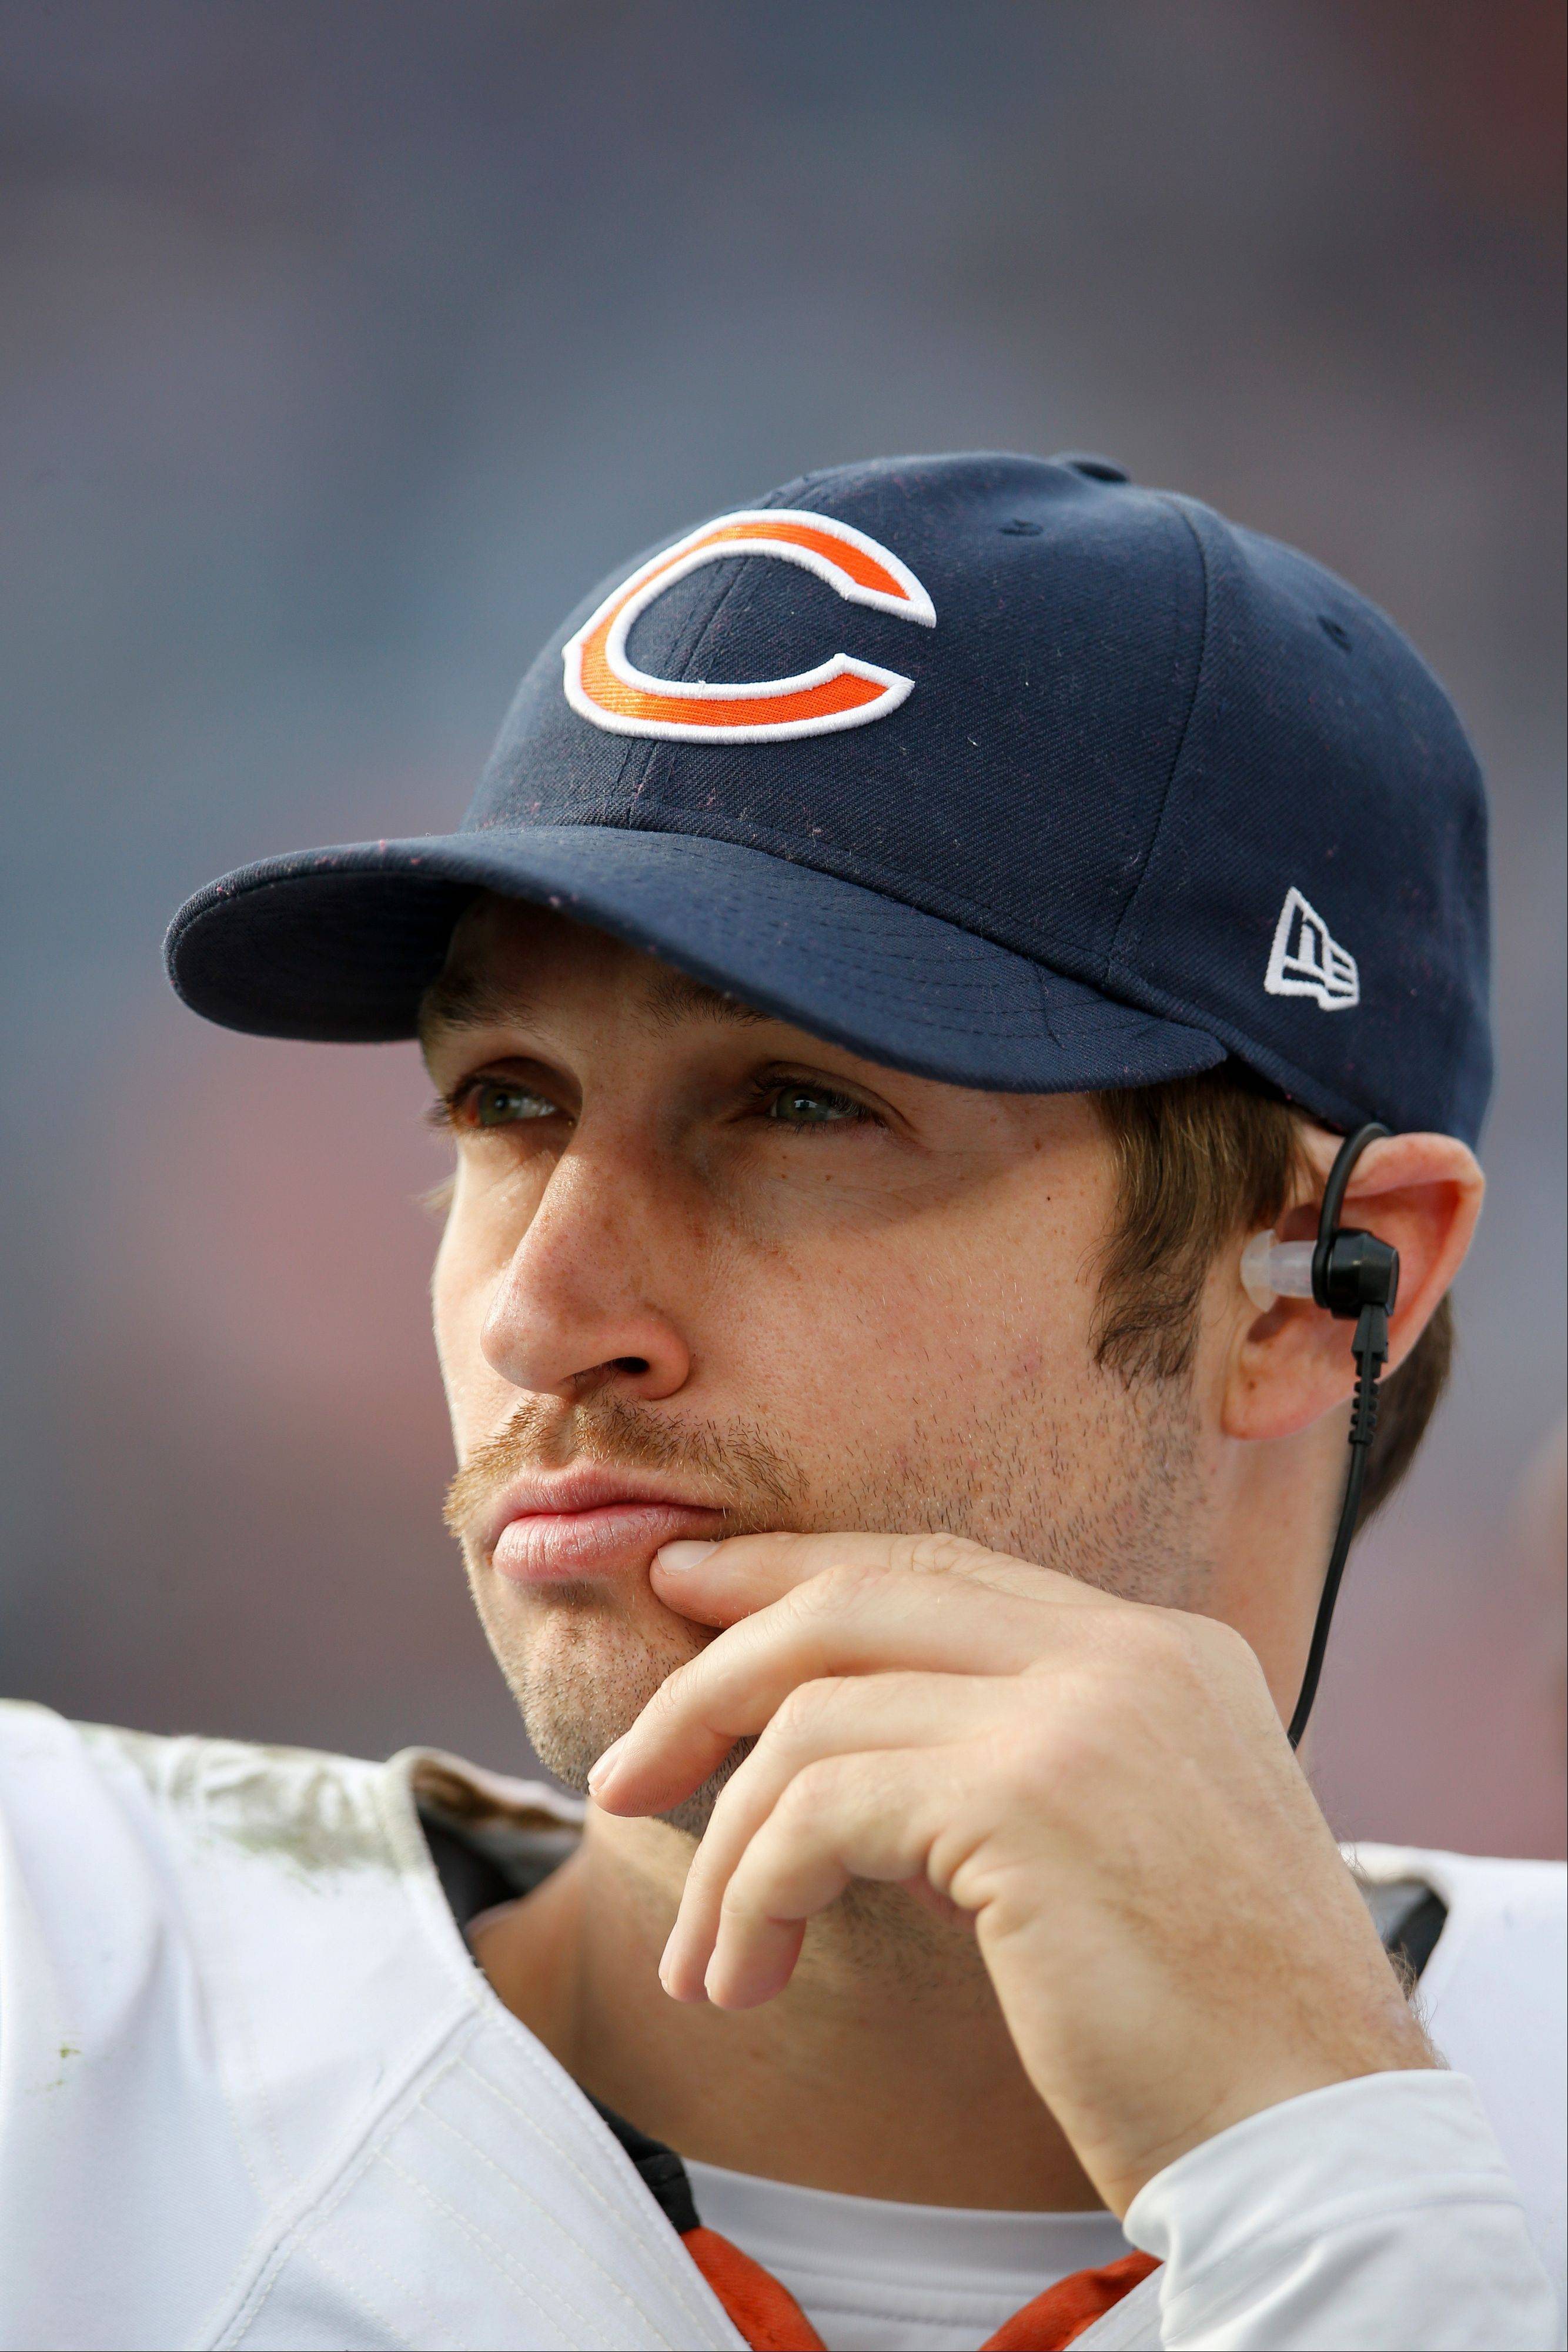 The recent concussion suffered by Chicago Bears quarterback Jay Cutler shines a spotlight on the impact brain injuries can have on athletes.